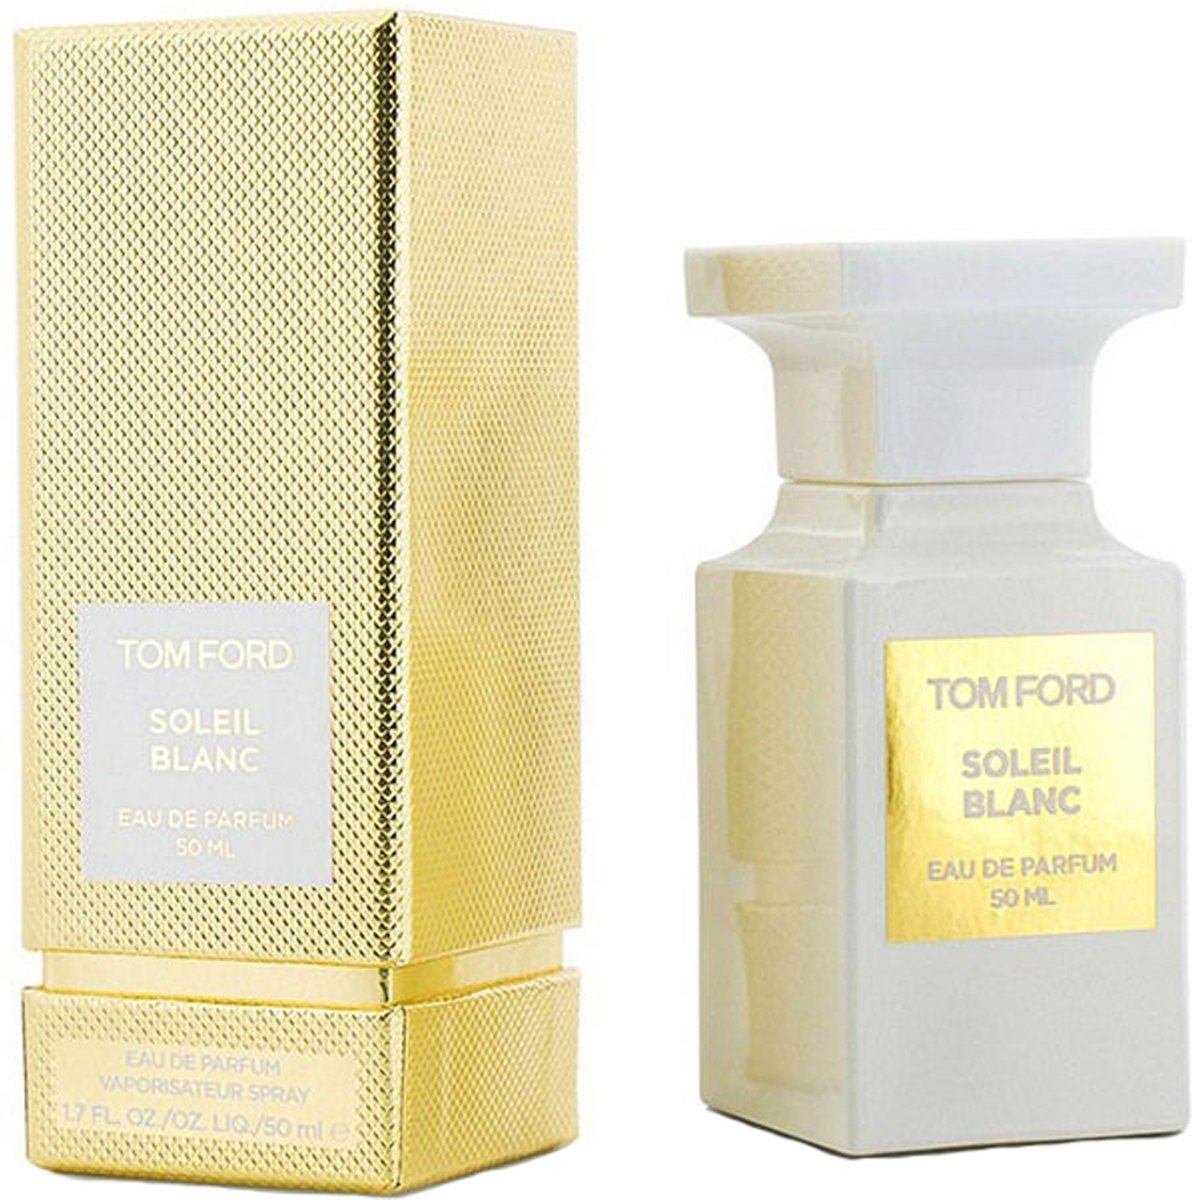 Tom Ford Soleil Blanc 50ml EDP Spray